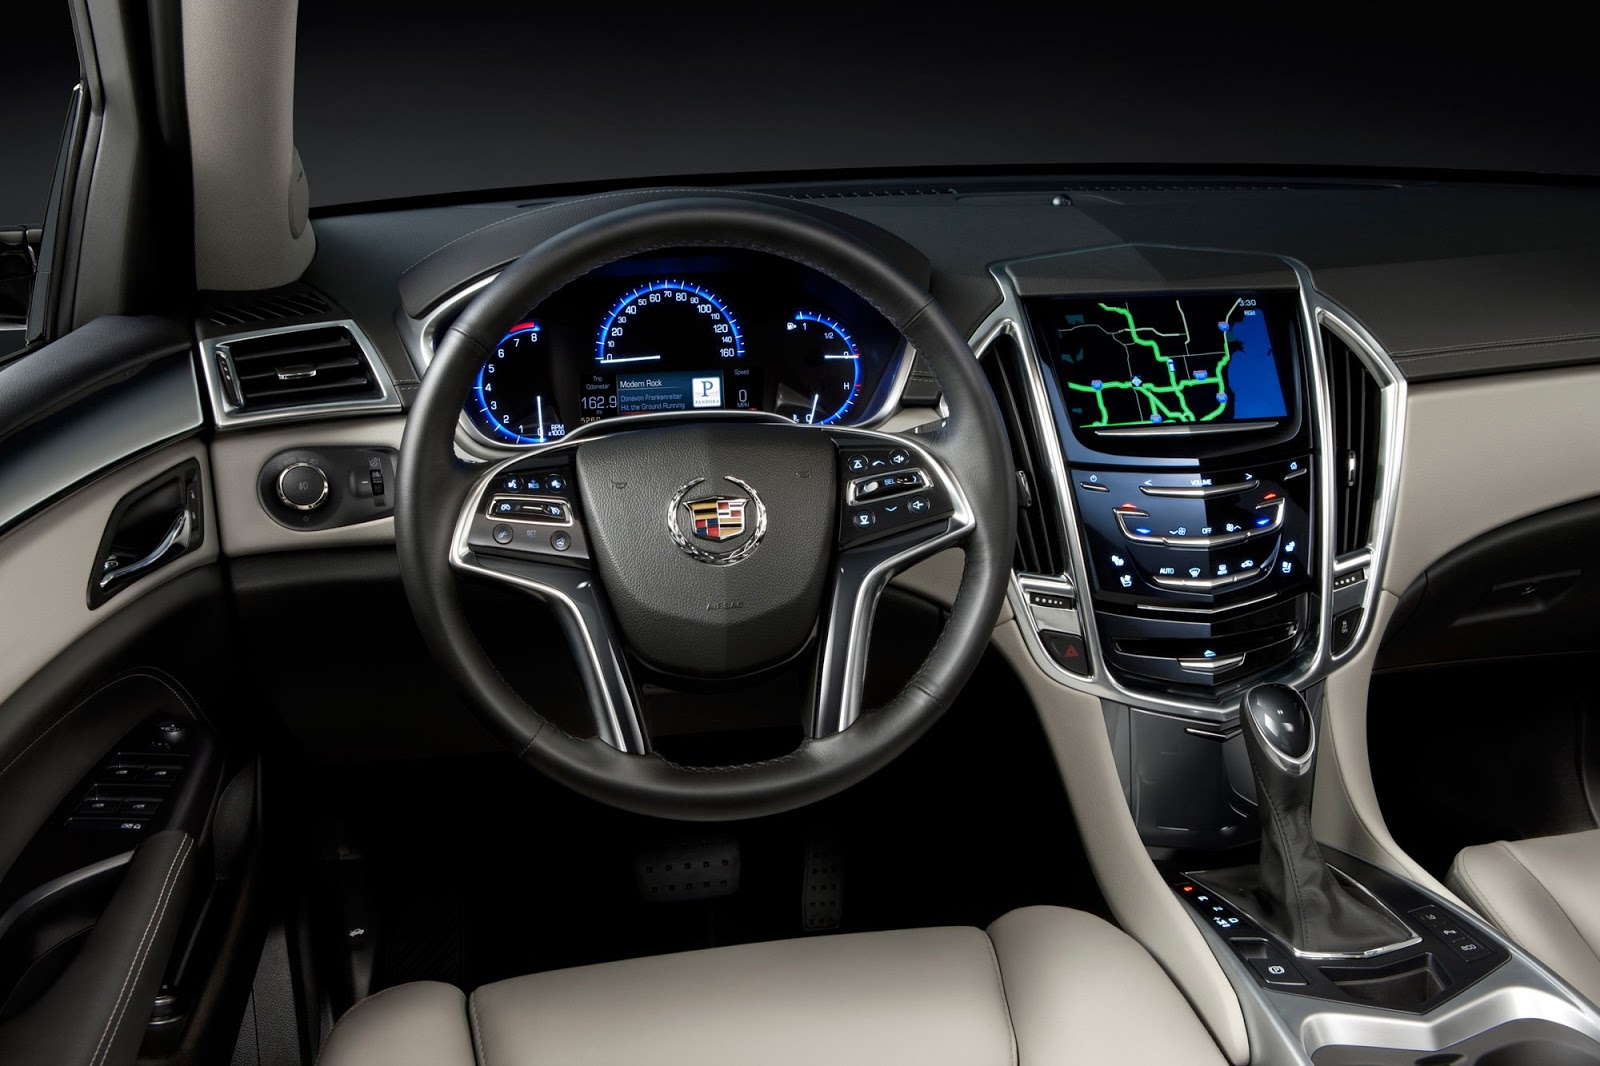 2020 Cadillac XT5 Interior Changes & New Features